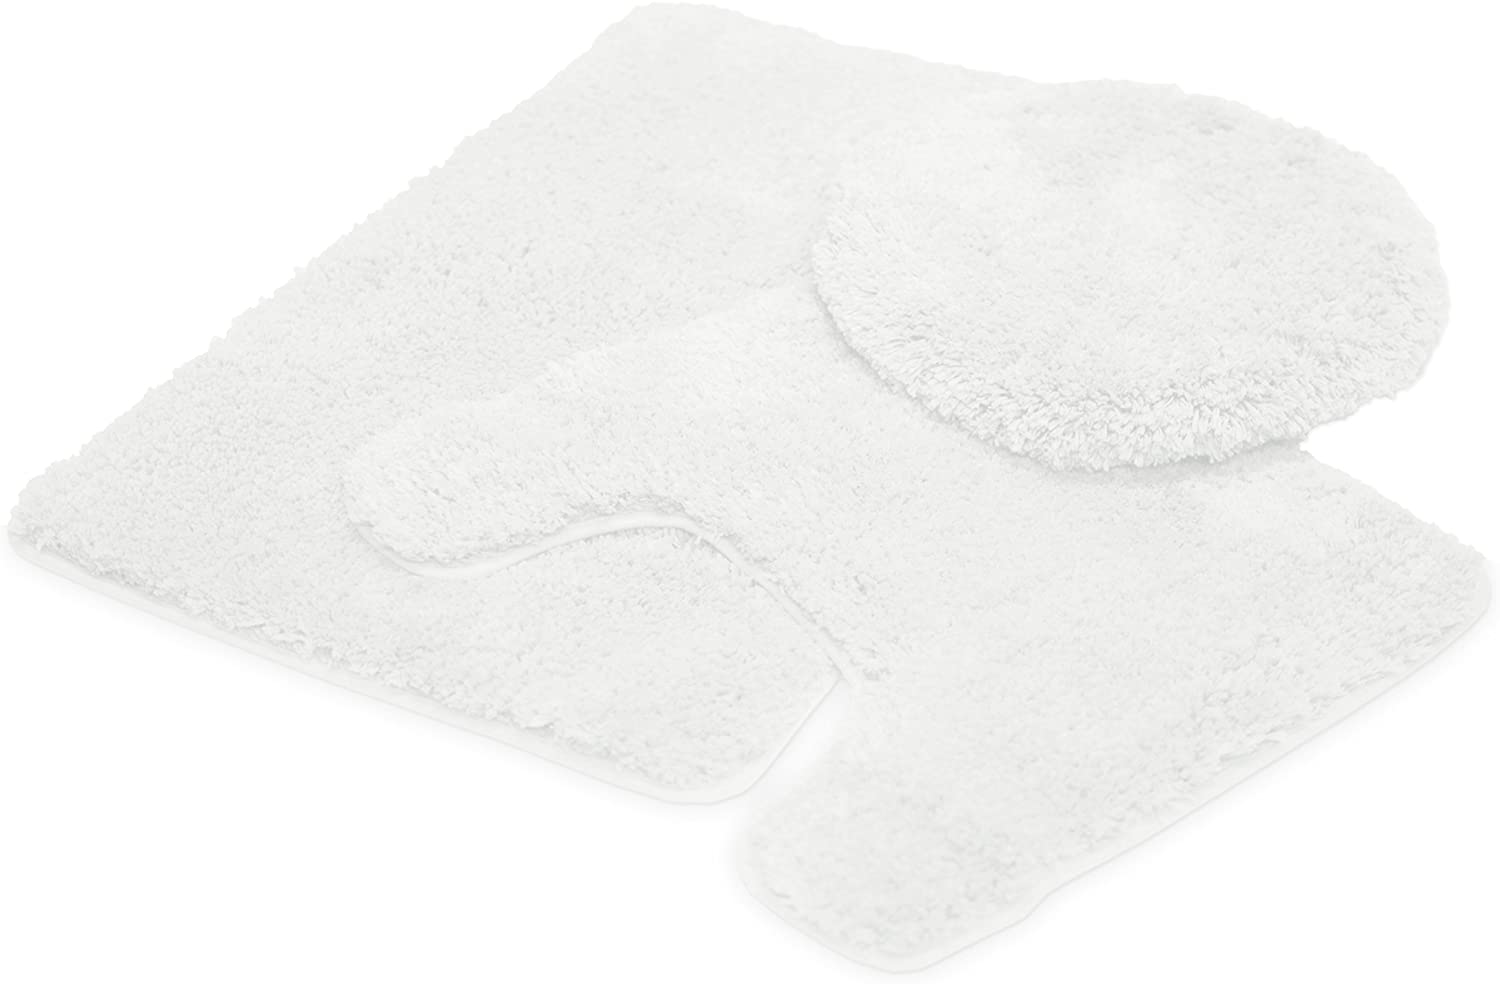 Mary 3 Piece Bathroom Rug Set, Luxury Soft Plush Shaggy Thick Fluffy Microfiber Bath Mat, Countour Rug, Toilet Seat Lid Cover, Non-Slip Rubber Back, Floor Mats Water Absorbent, White